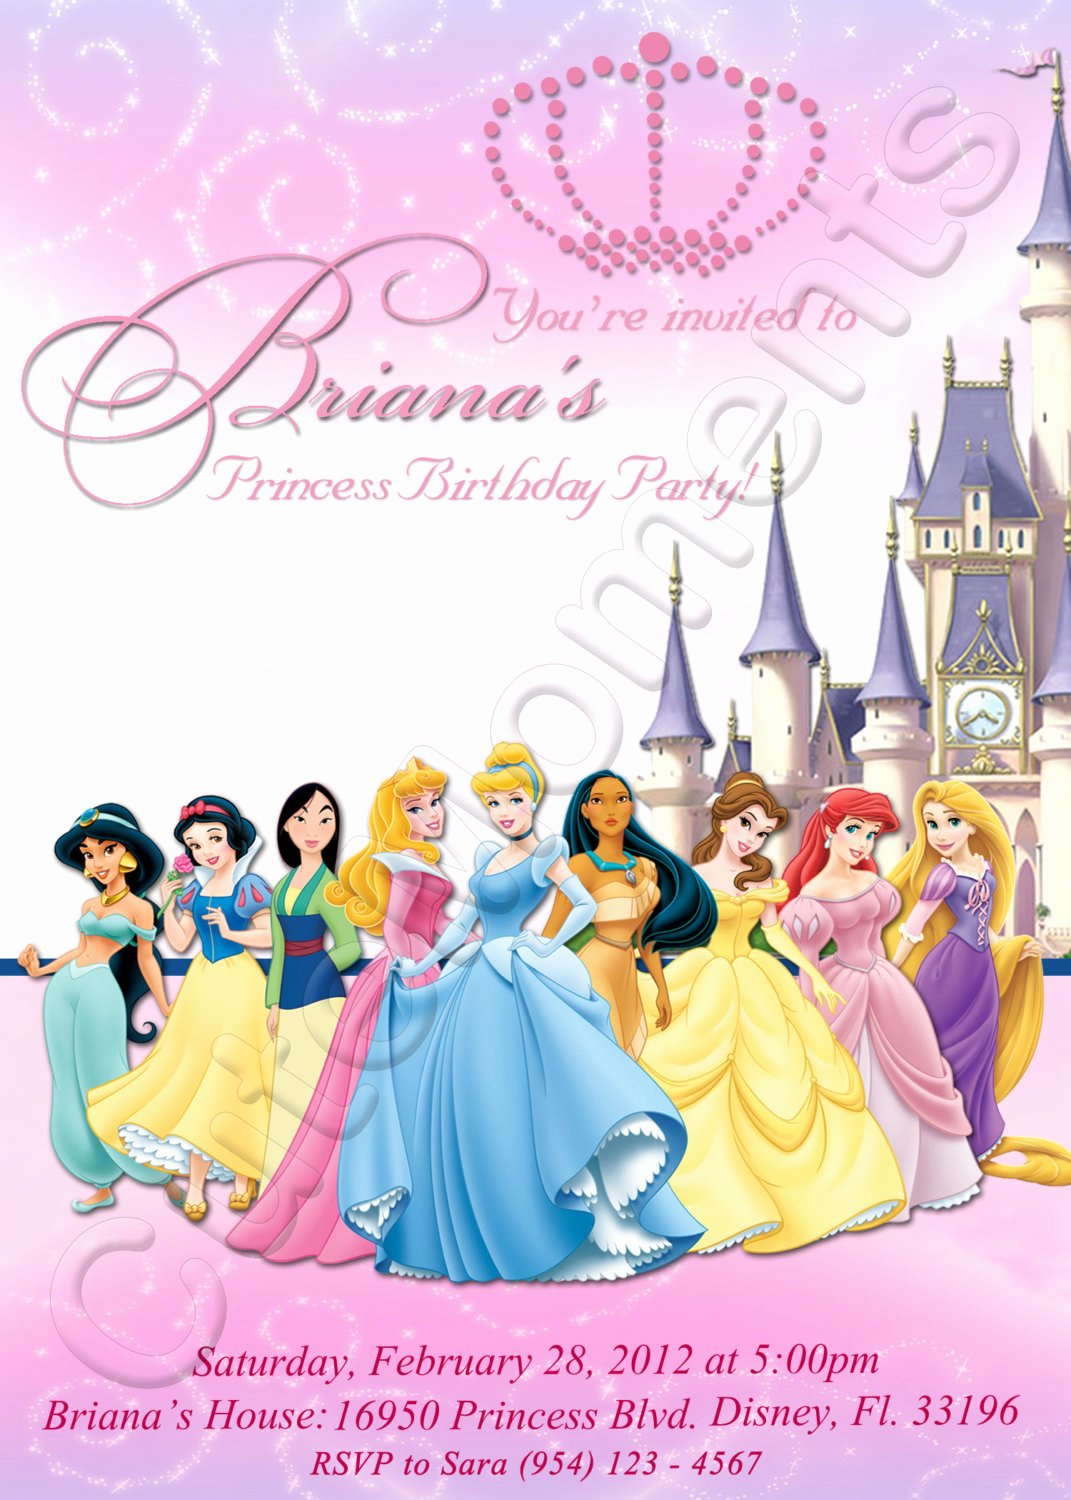 Disney Birthday Invitations Cards New 40th Birthday Ideas Disney Princess Birthday Party Invitation Templates